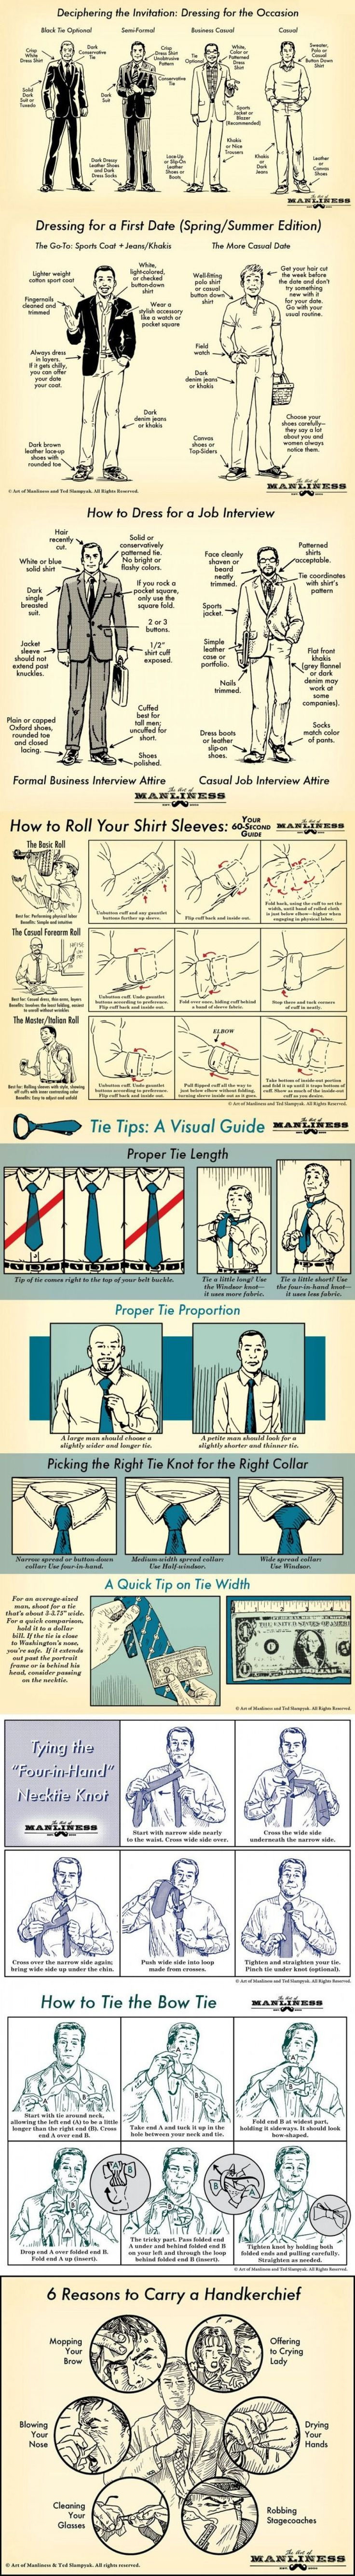 Cool infographic show how a man should dress which give tips and tricks on getting the perfect look.